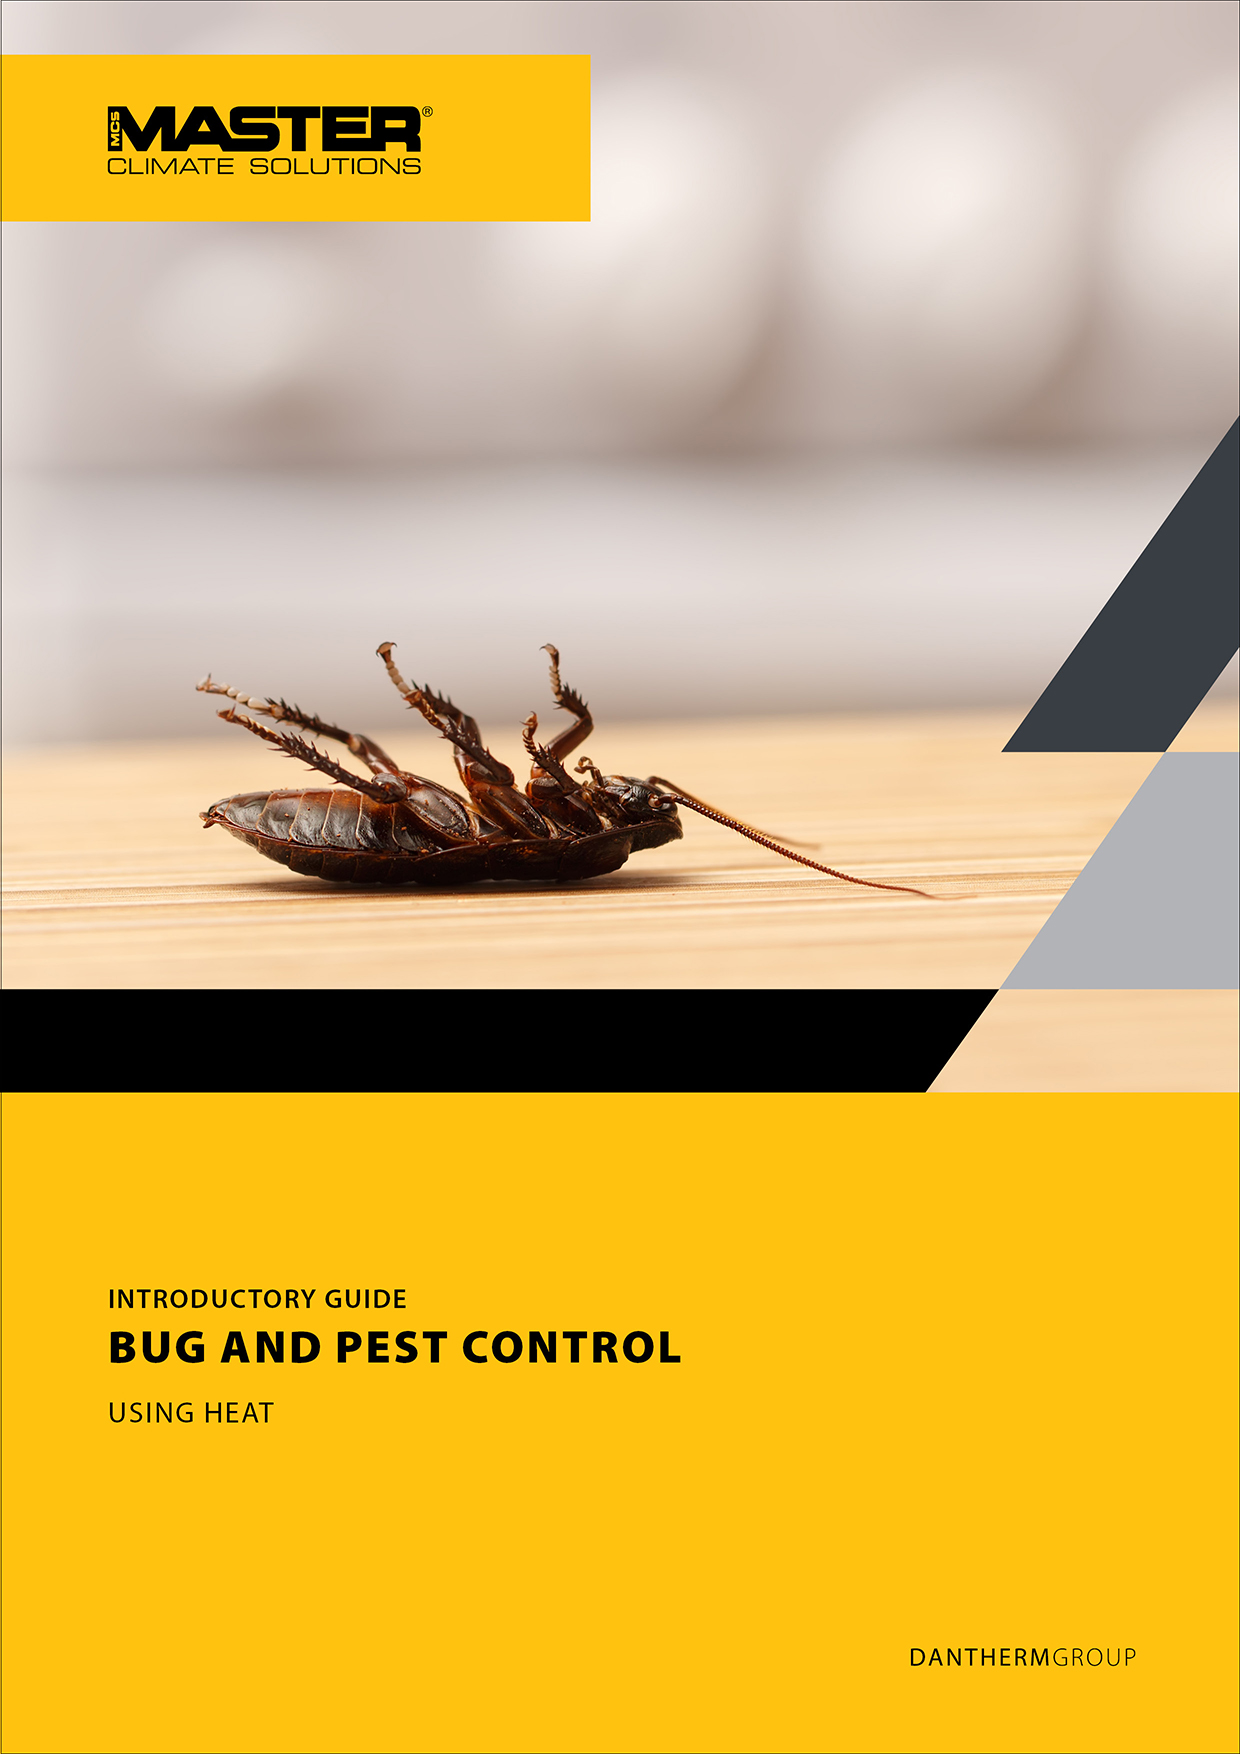 Master-Application-Guide-Bug-Pest-Control-COVER_border_50pct